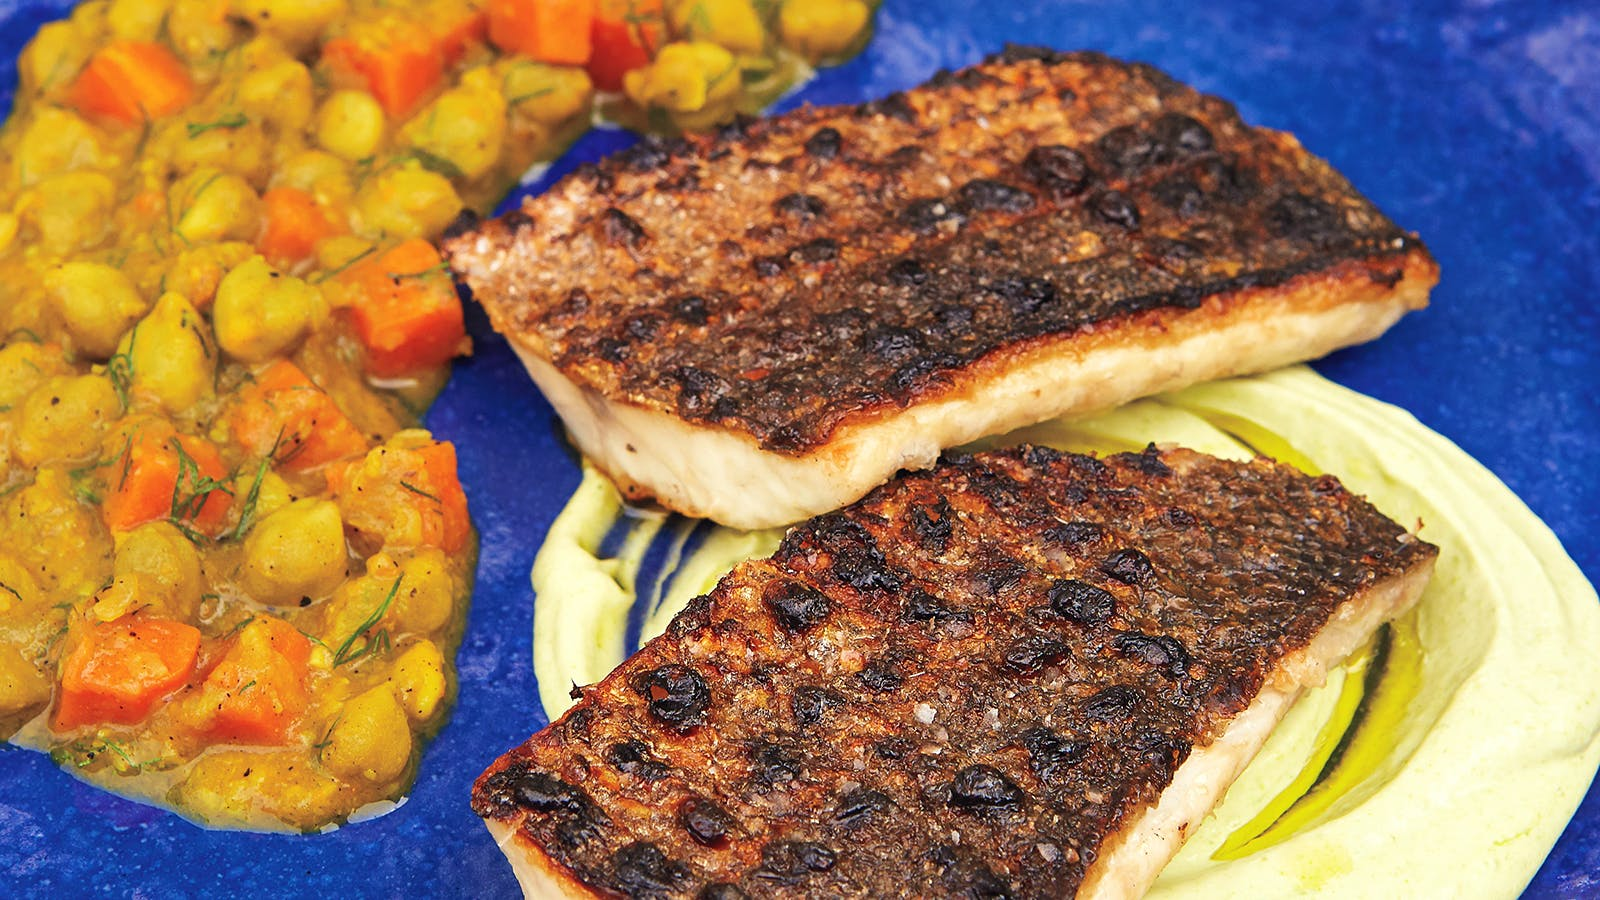 A place of two grilled branzino fillets with chickpea stew